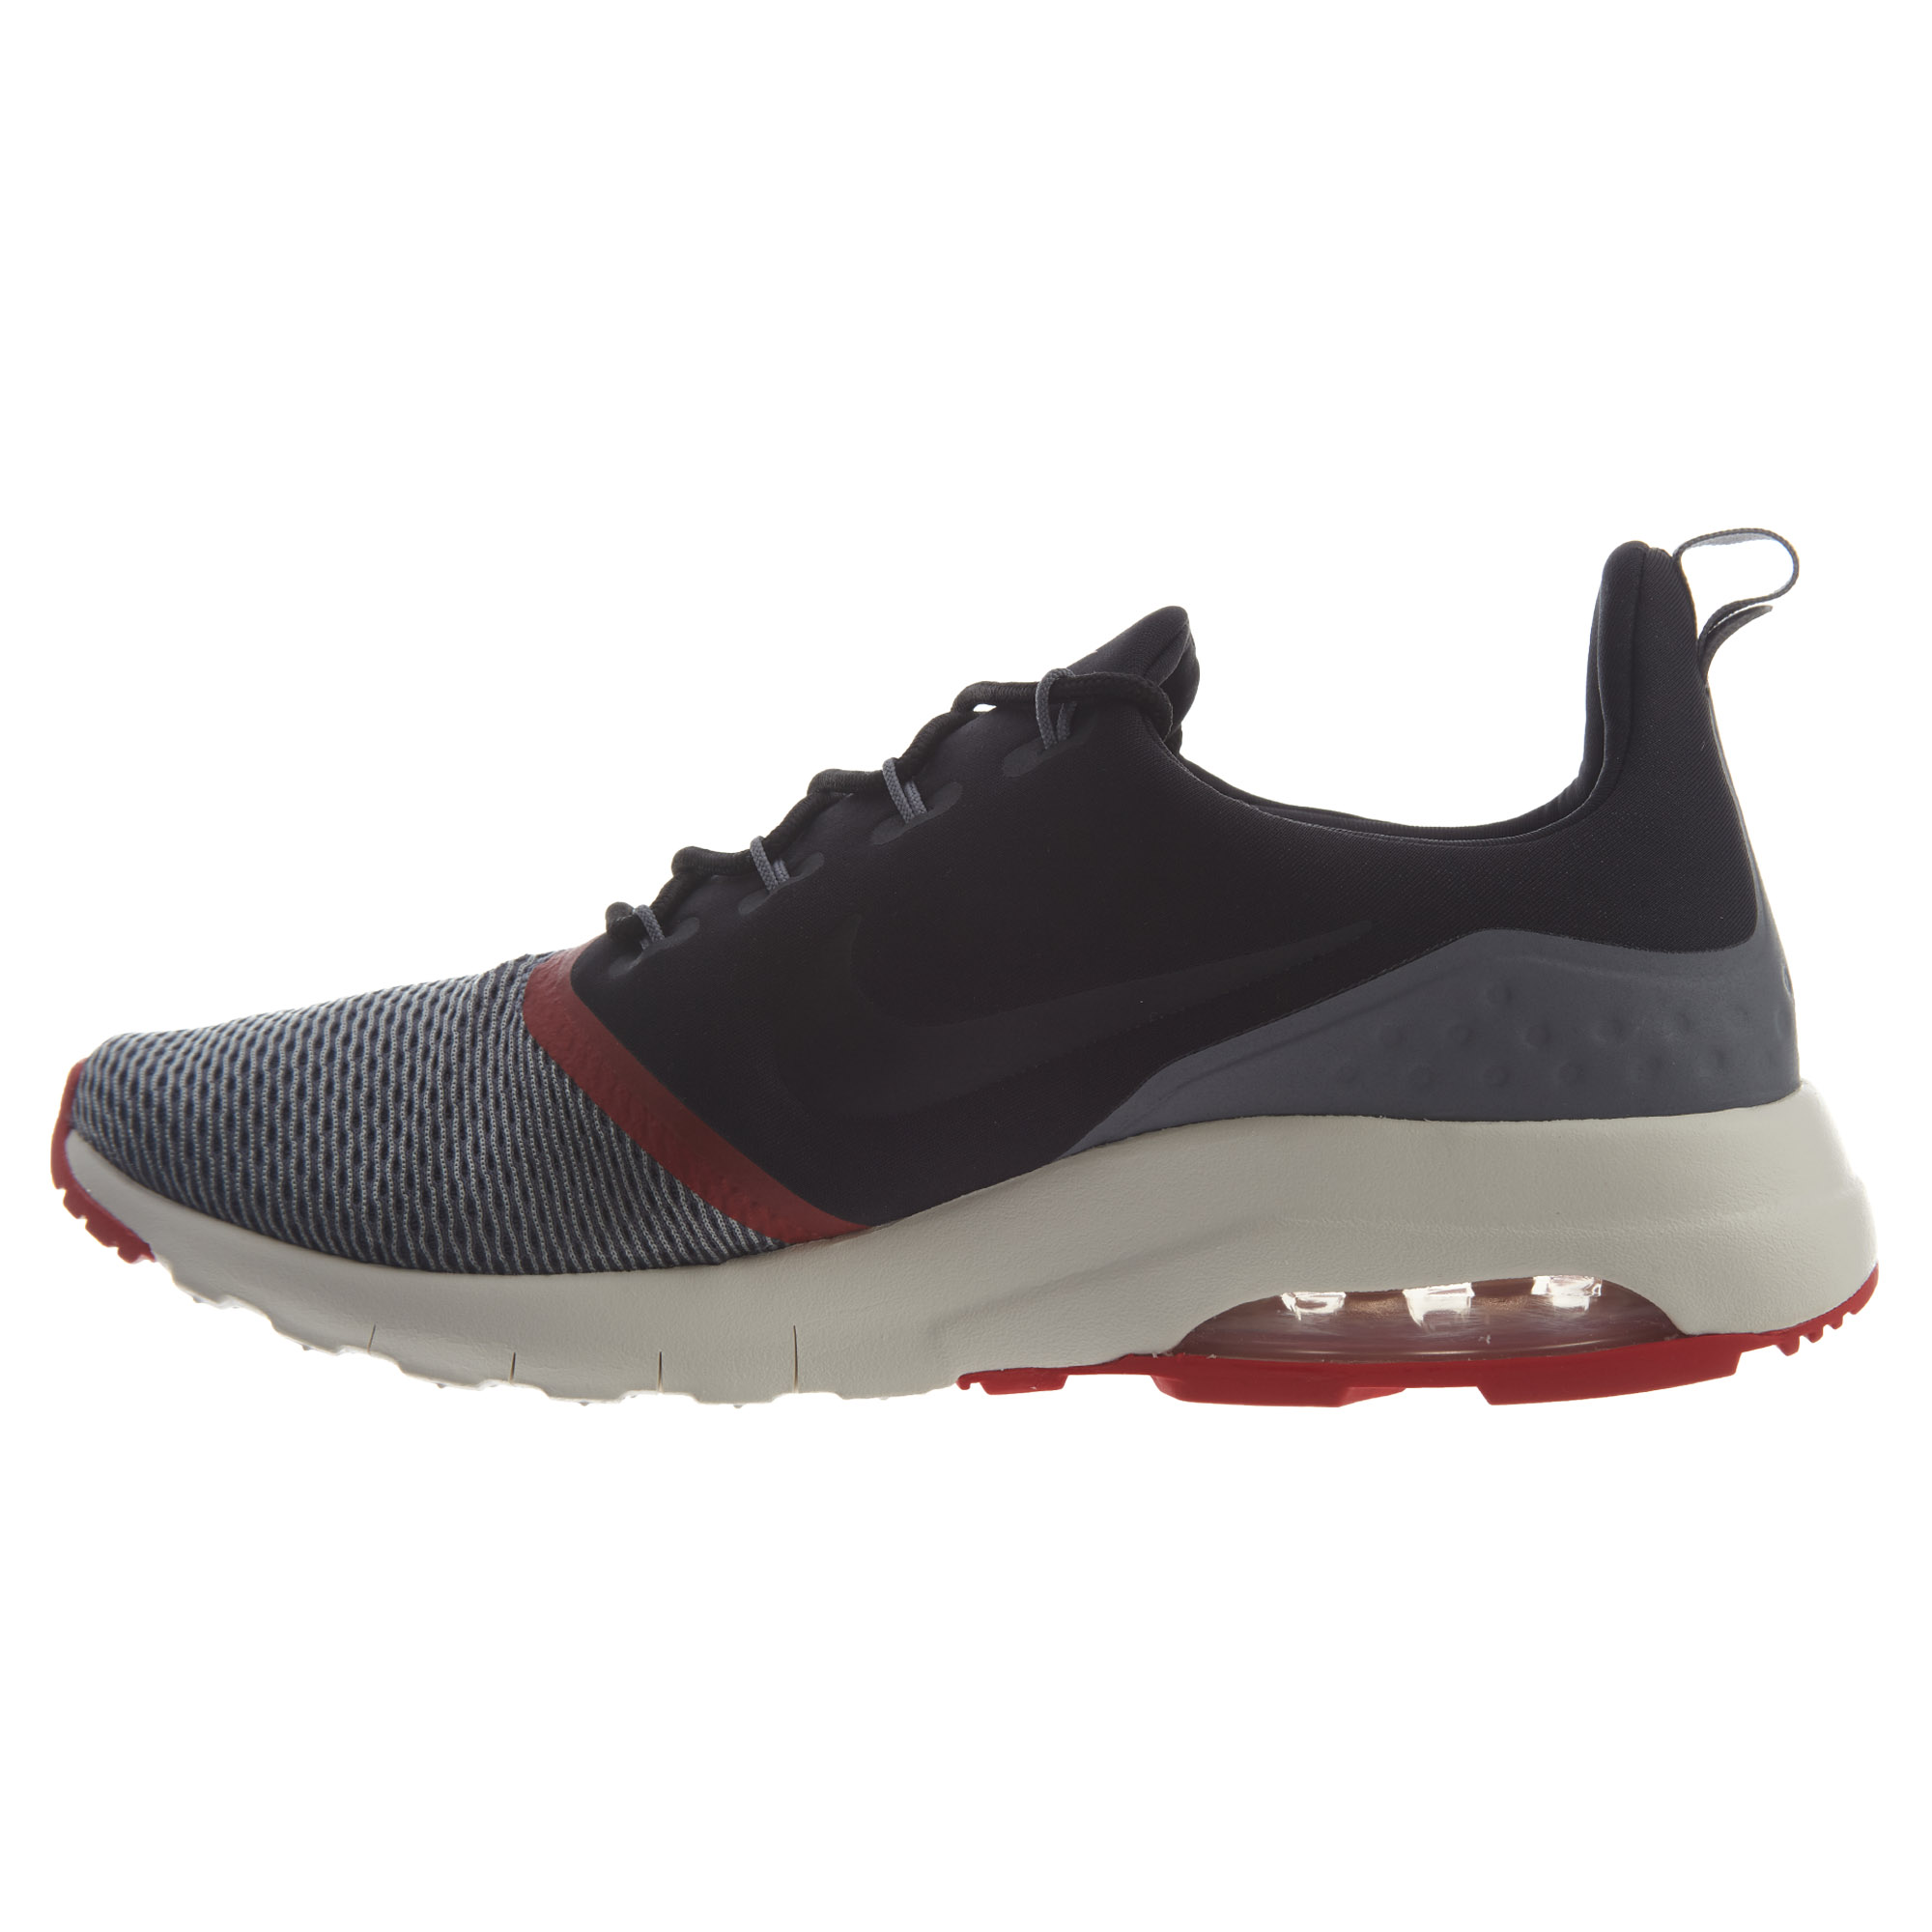 d59c014269a1 Details about Nike Mens Air Max Motion Racer 2 Running Shoes AA2178-004